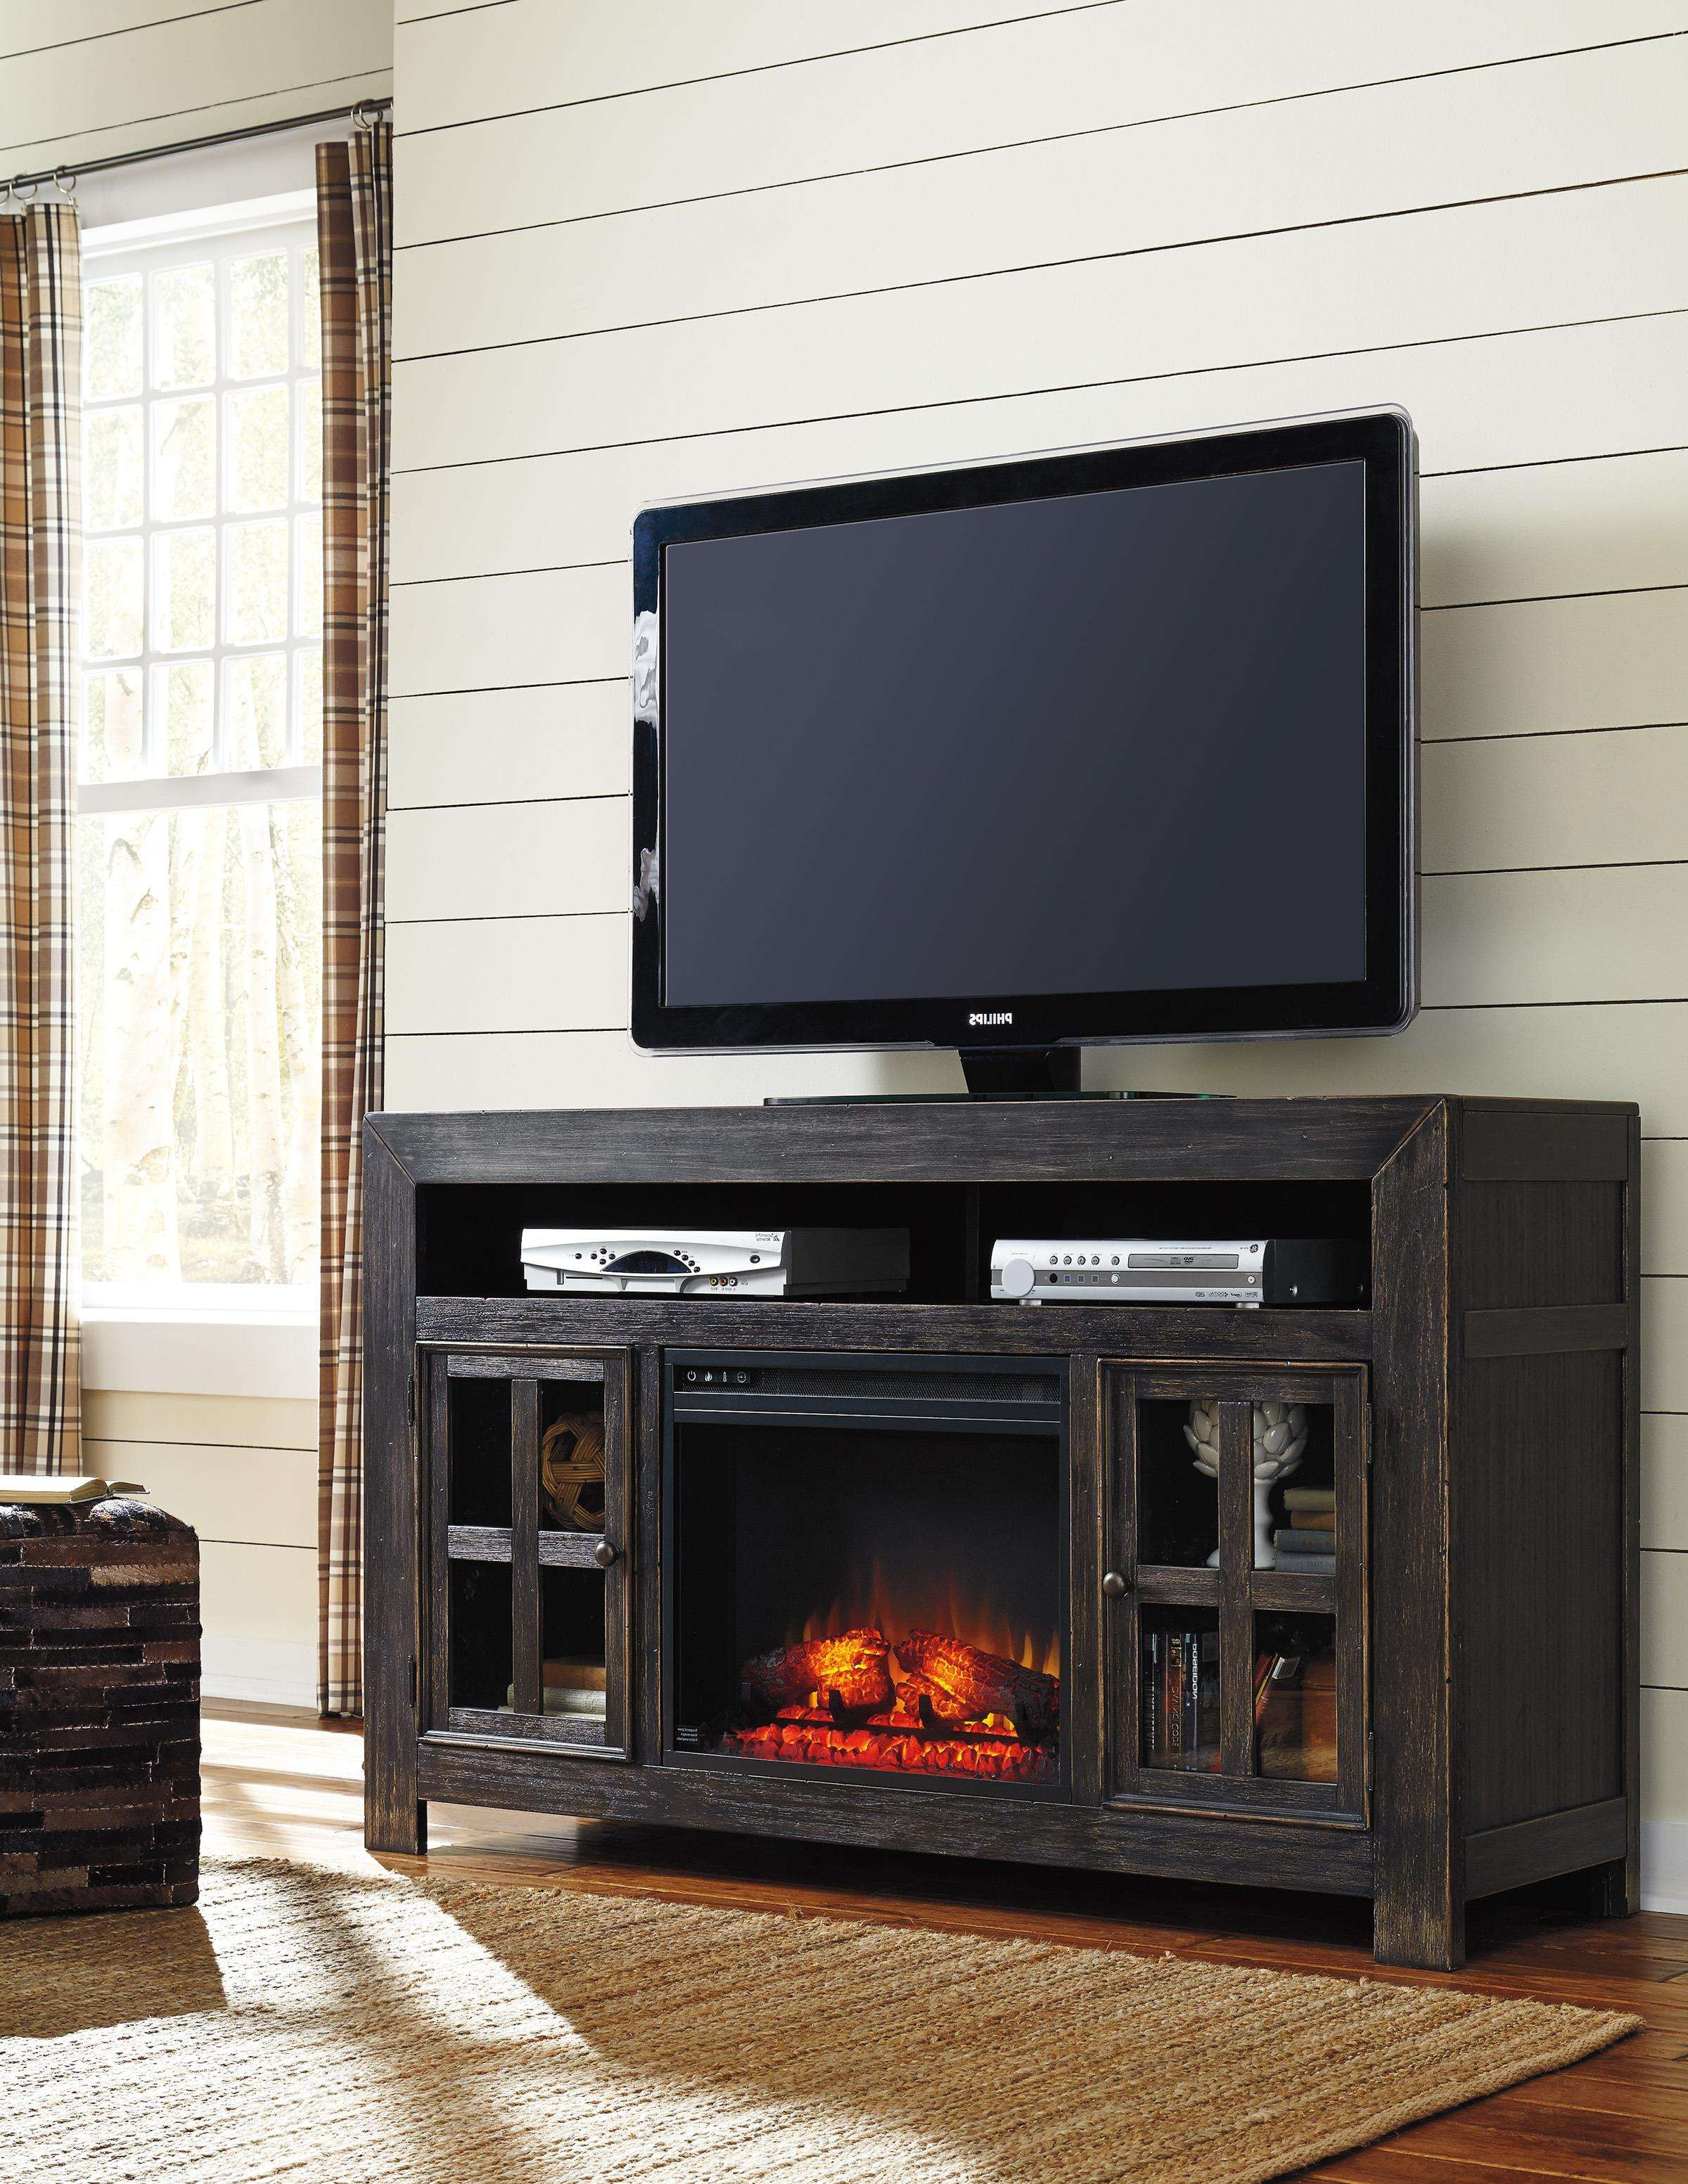 Decoration : Fireplace Tv Stands On Sale Electric Fireplace With With Regard To Tv Stands 38 Inches Wide (View 12 of 15)